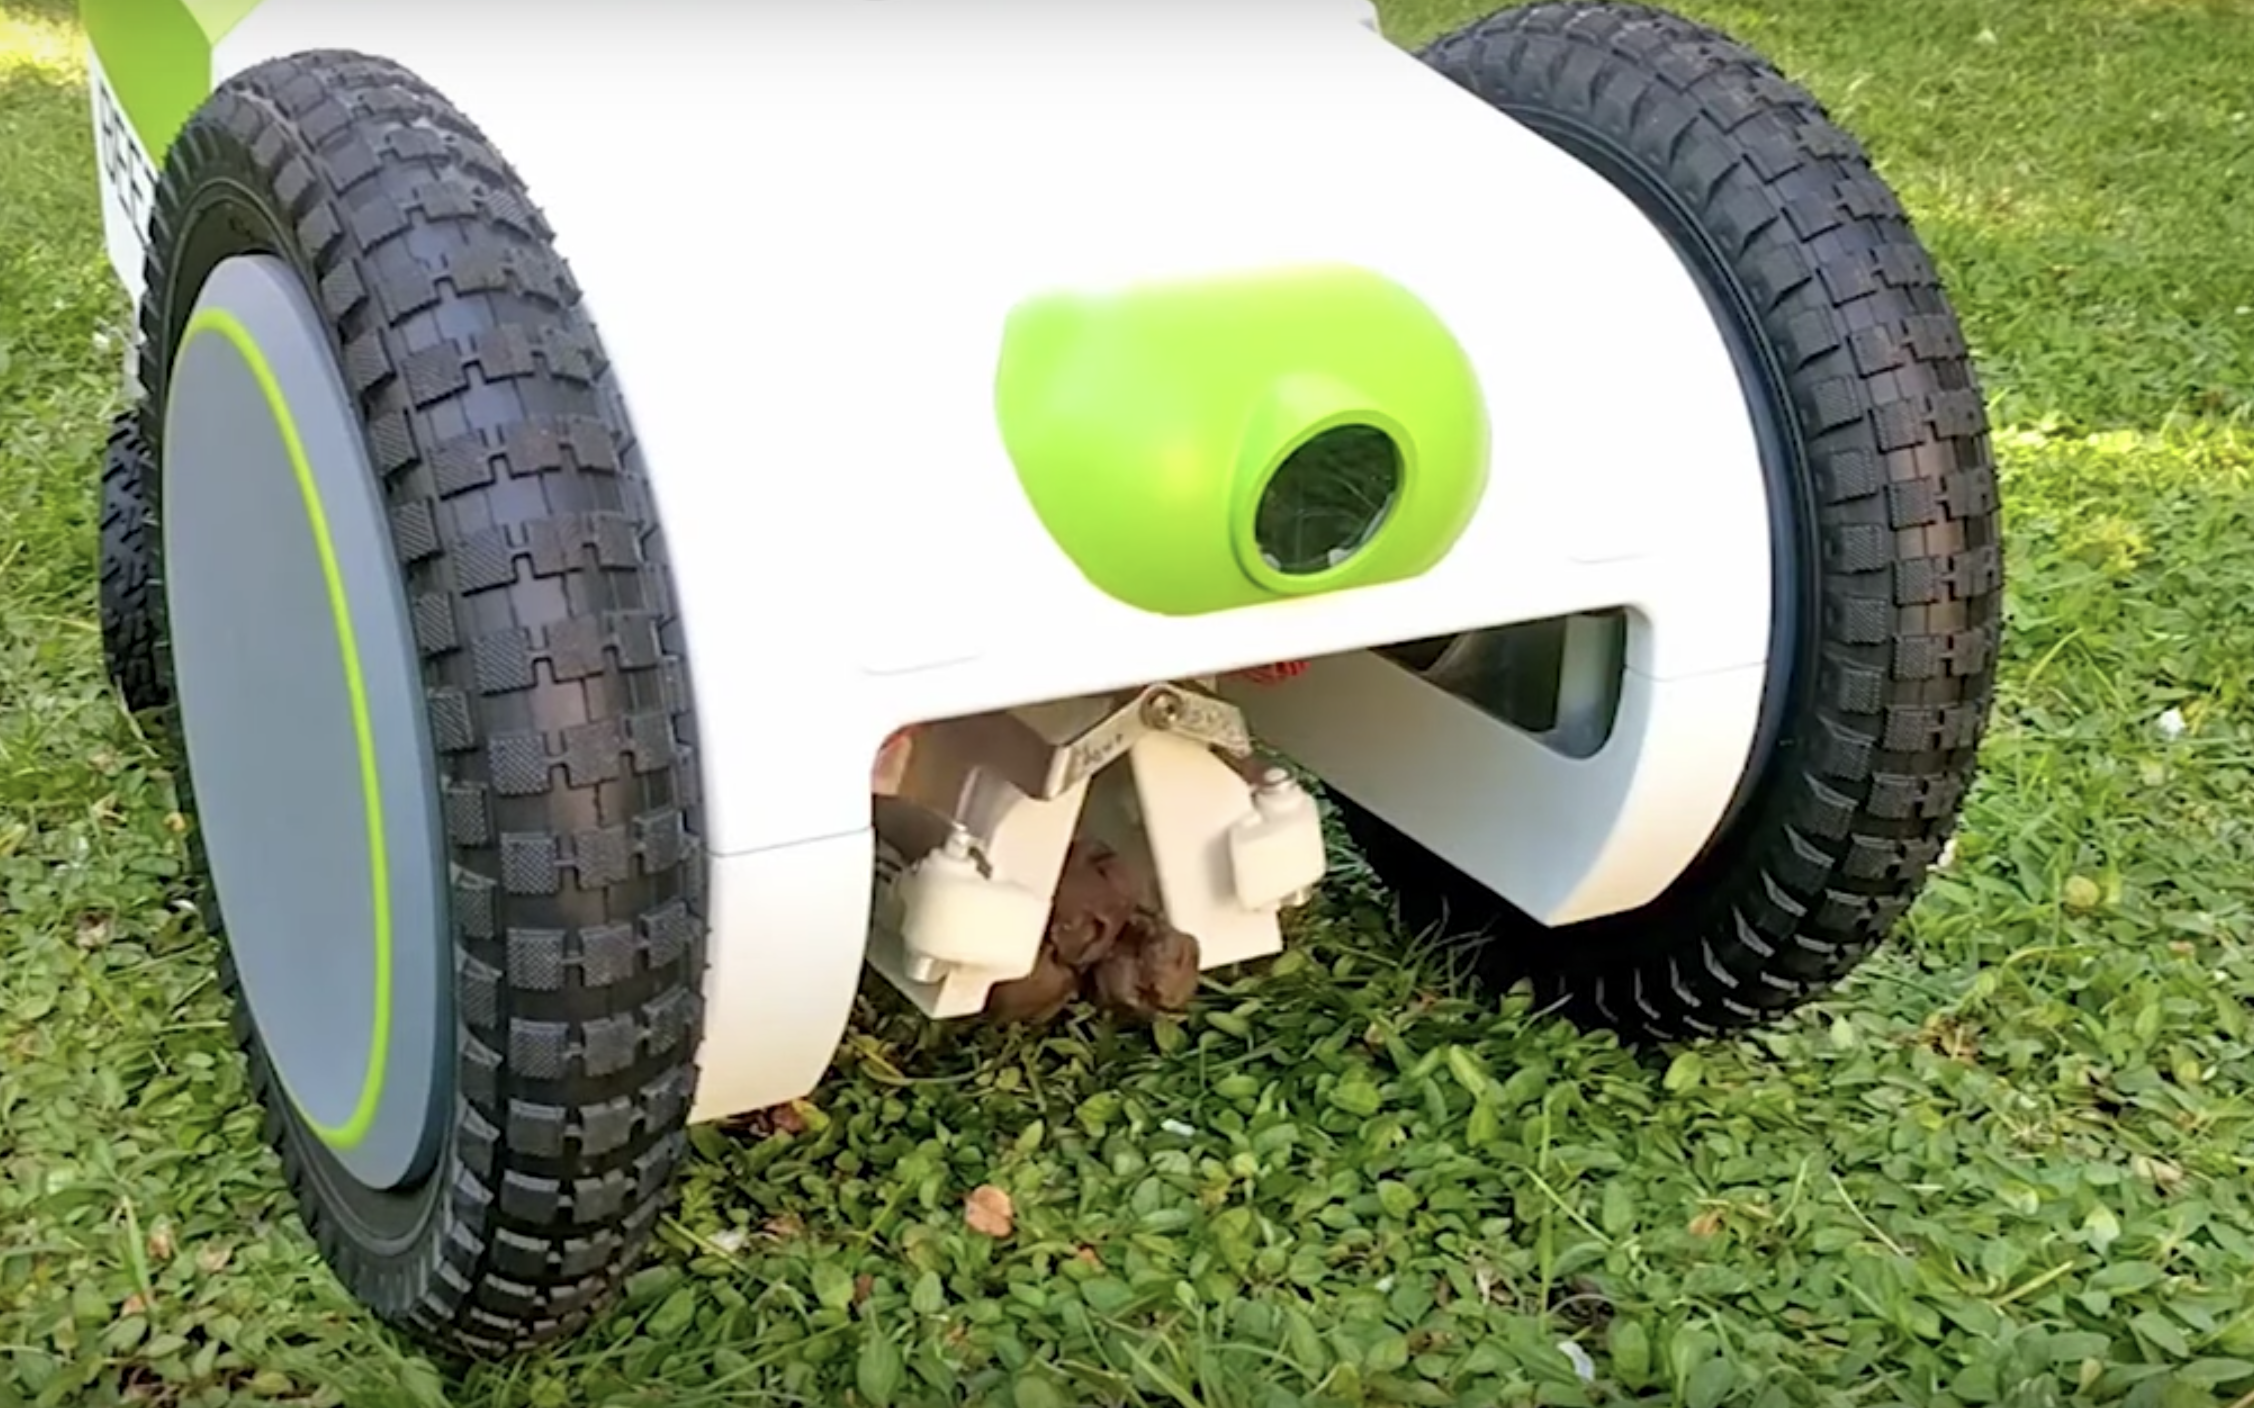 The Beetl Smart Robot Will Patrol Your Lawn And Pick Up Dog Poop For You